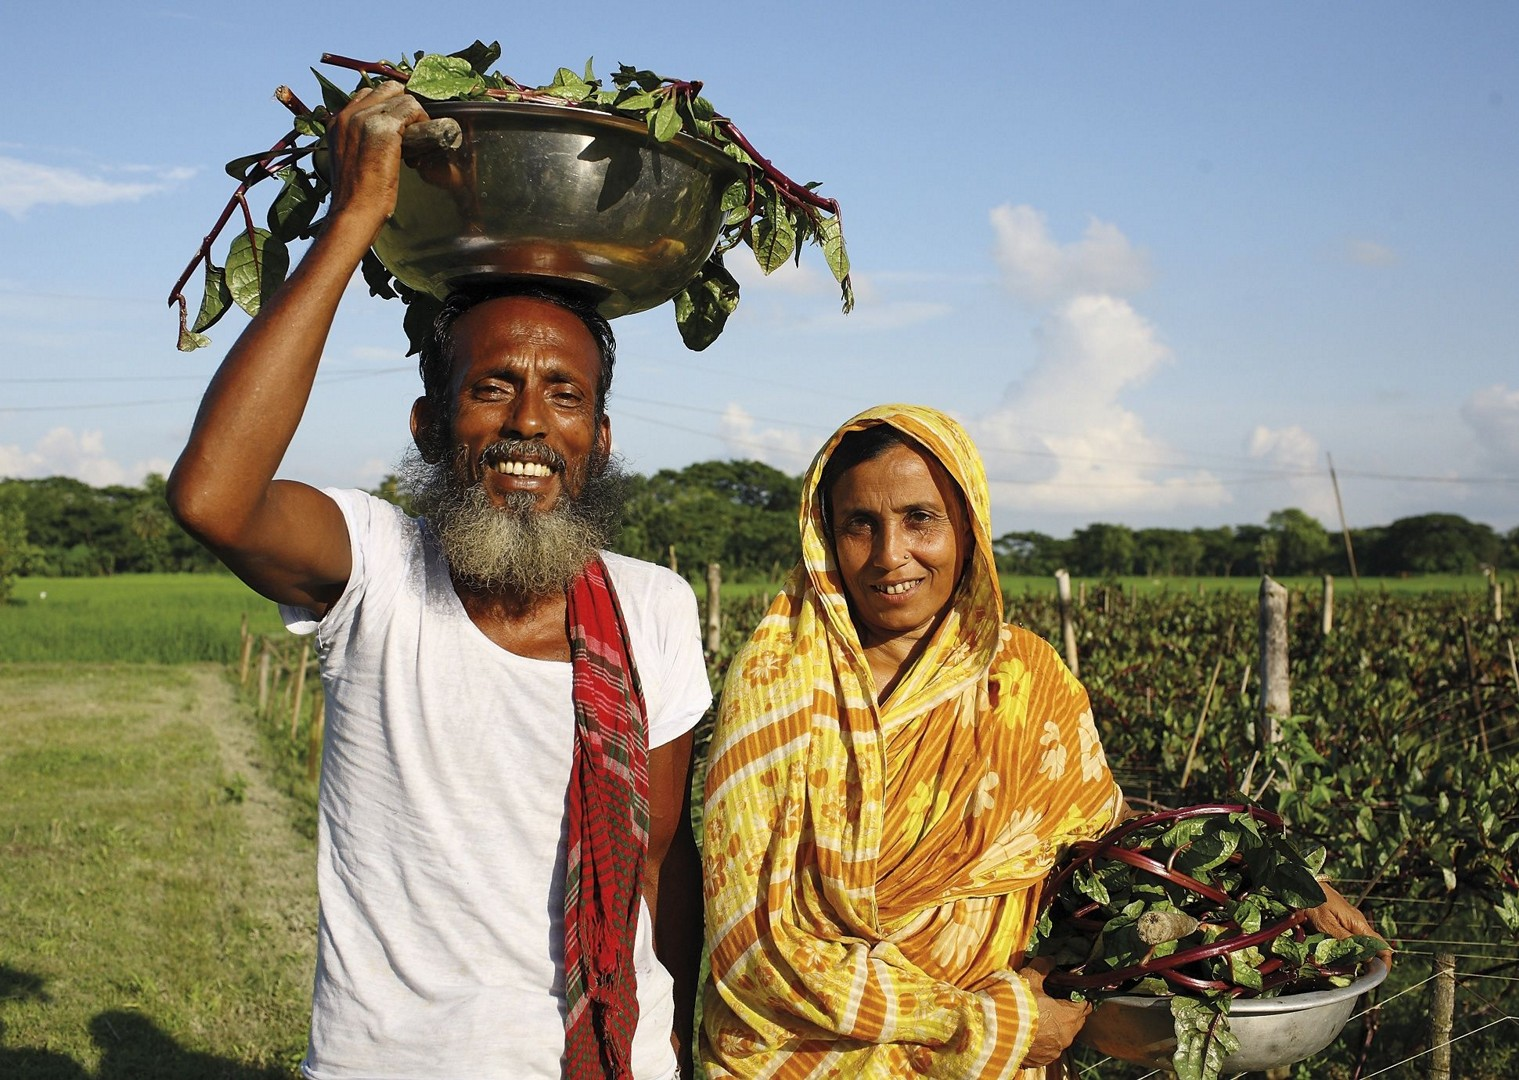 Harvesting spinach.jpg - Bangladesh - Meet the People Tours